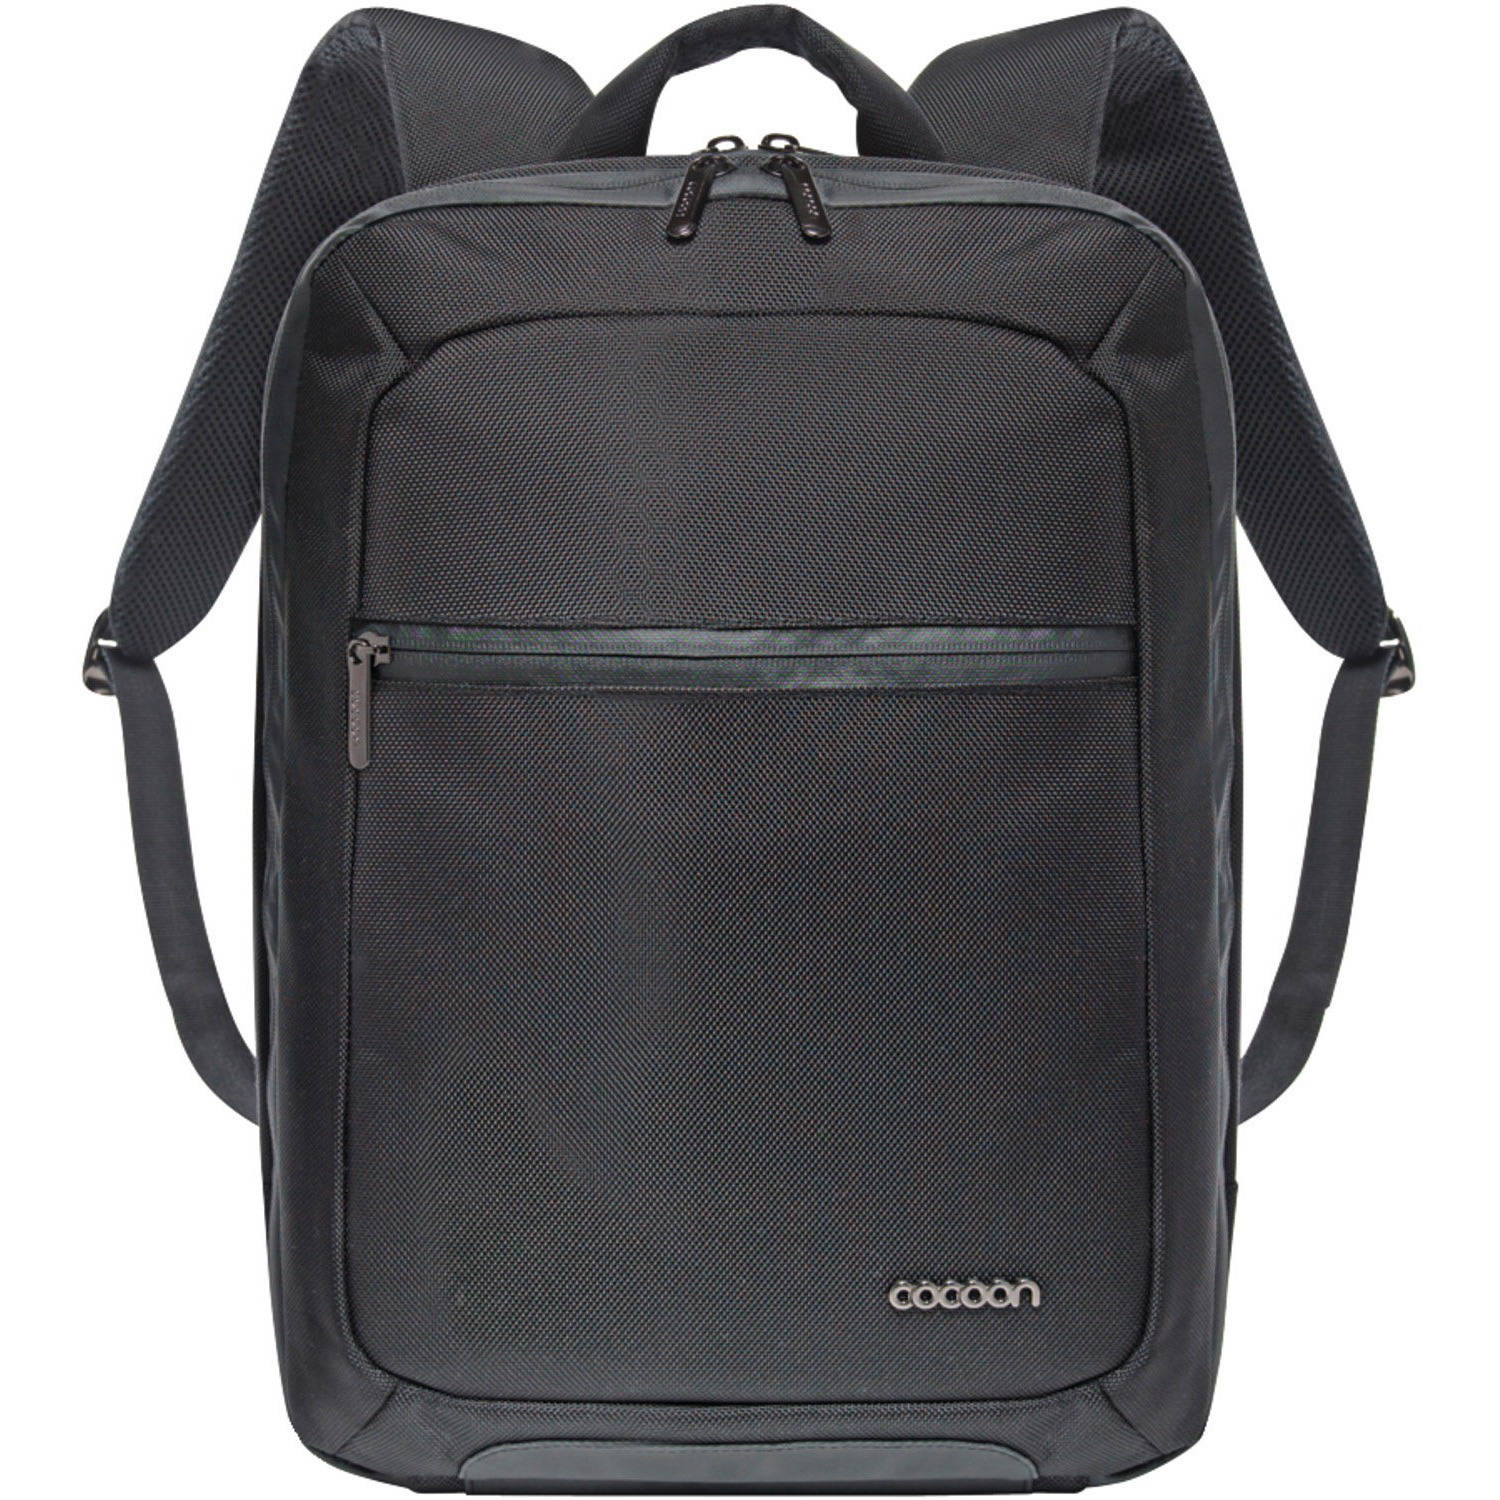 "Cocoon Mcp3401bk 15"" SLIM Backpack"